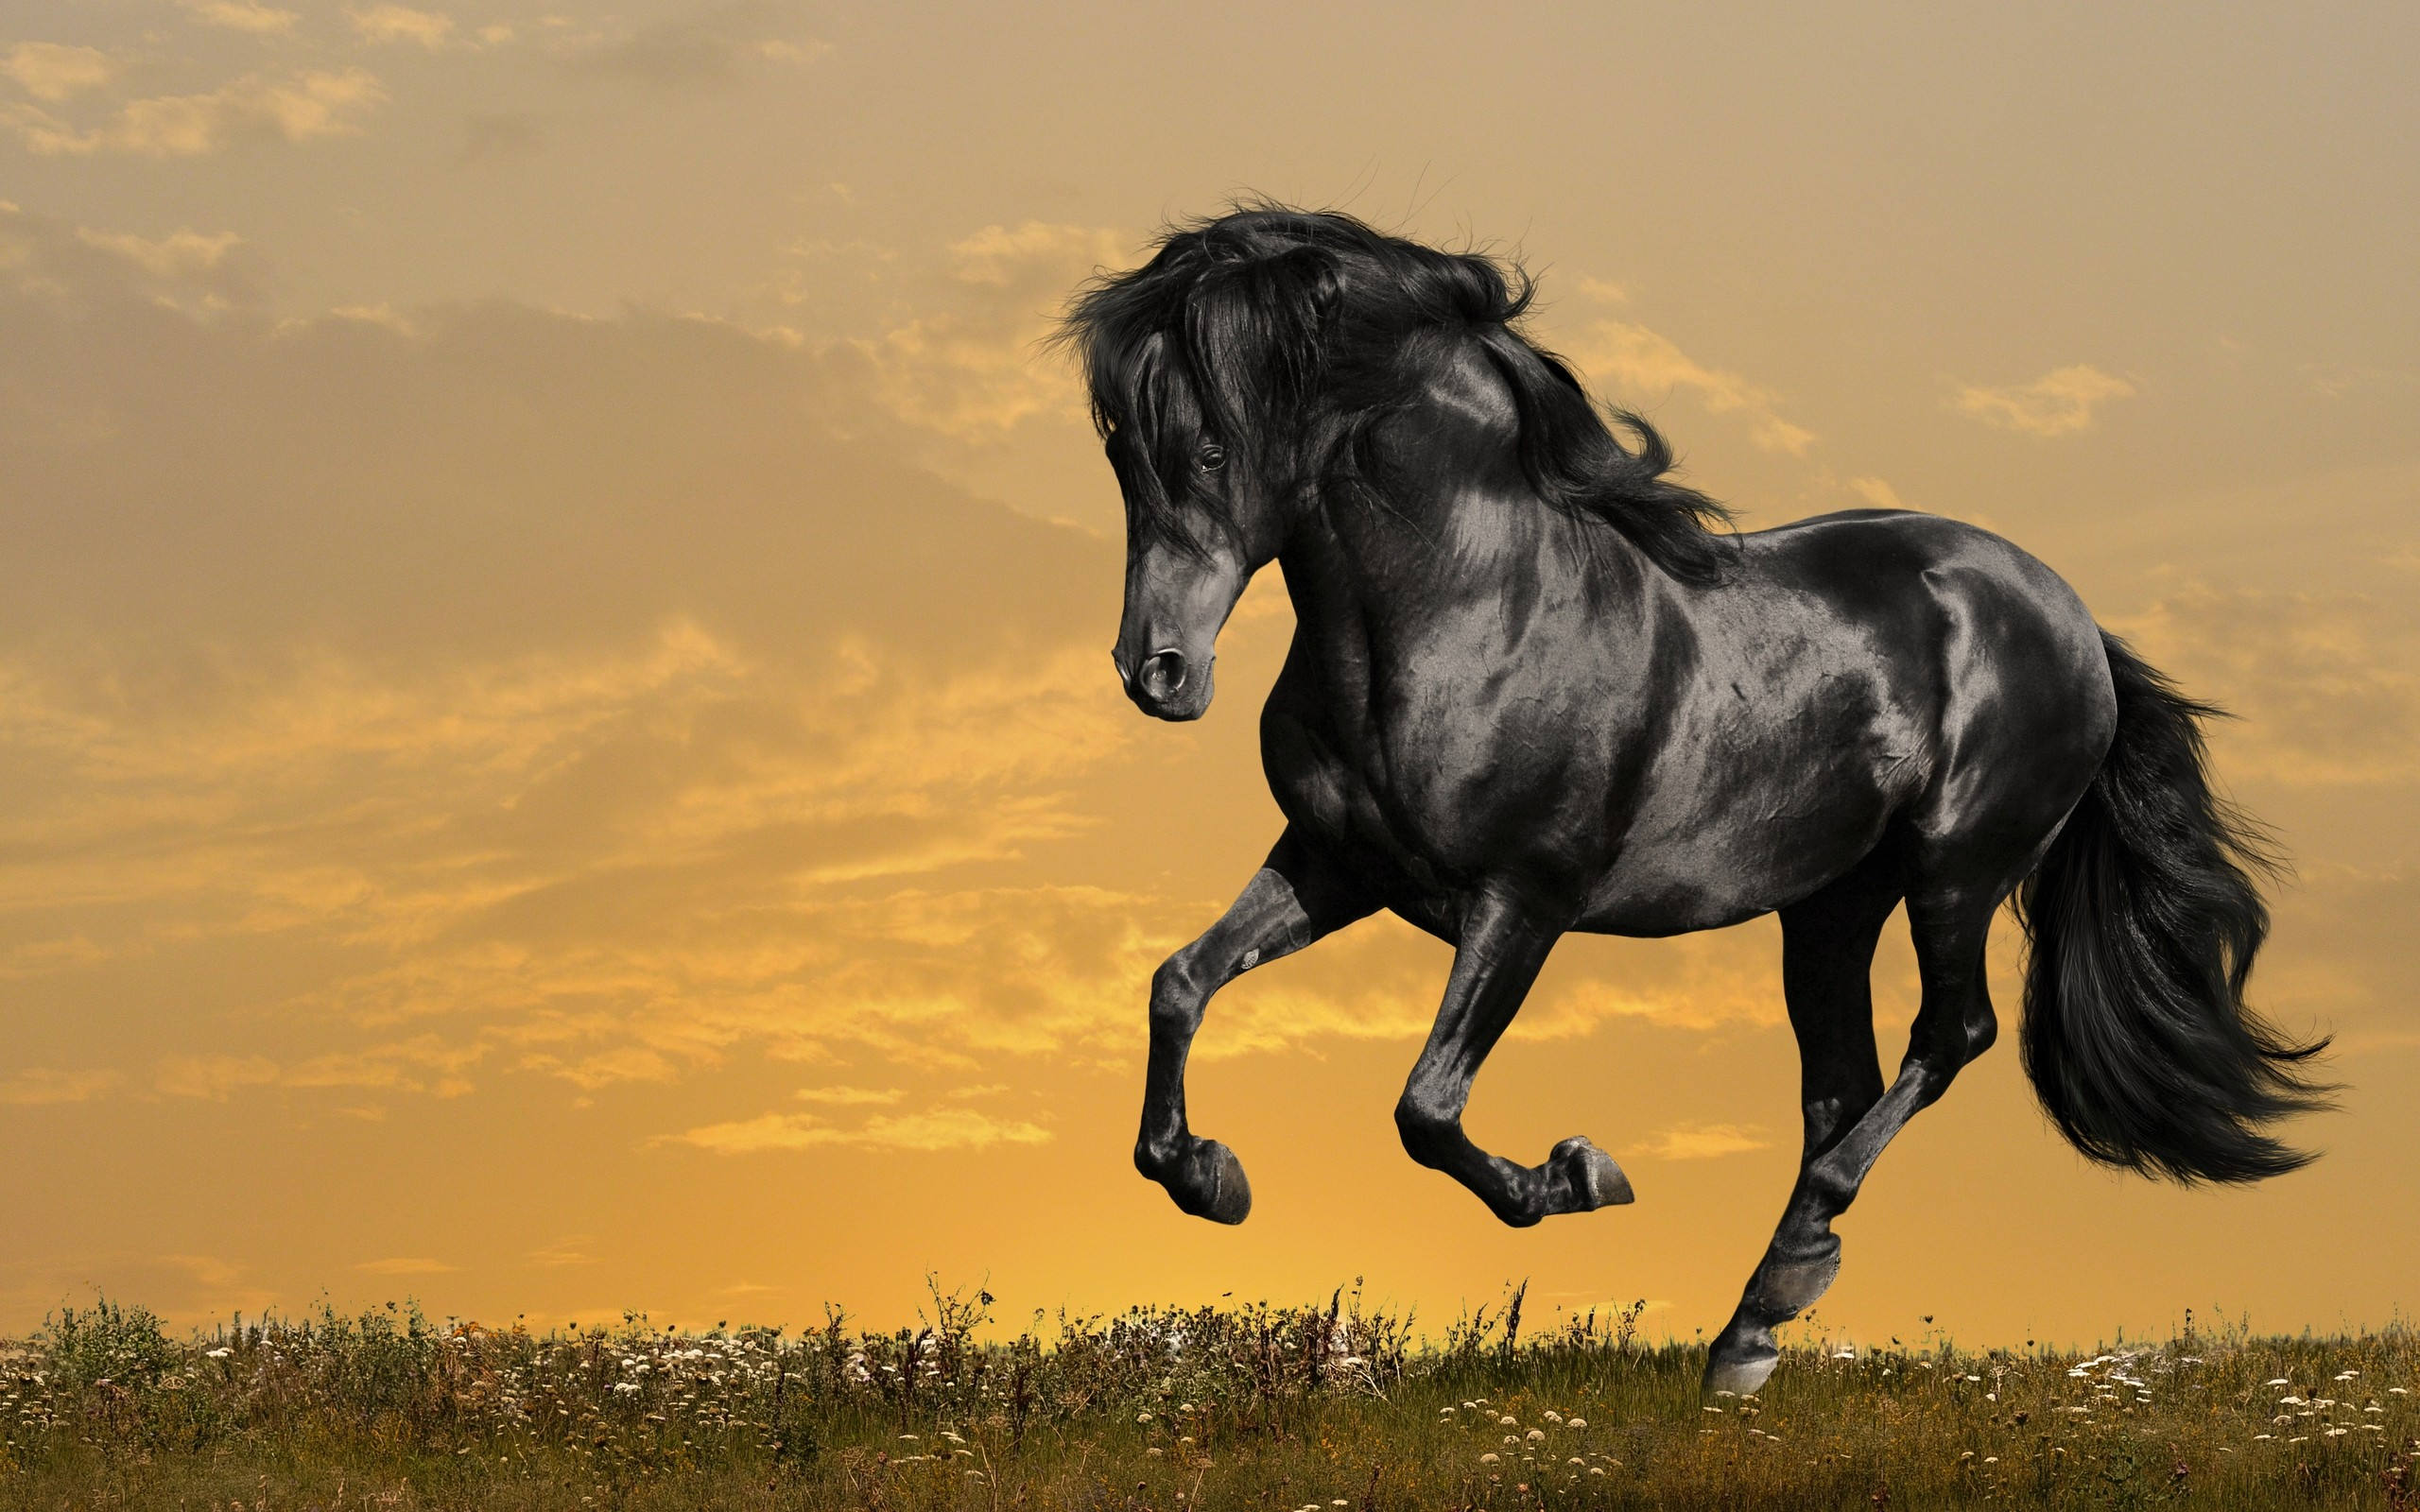 Res: 2560x1600, Horse Wallpapers